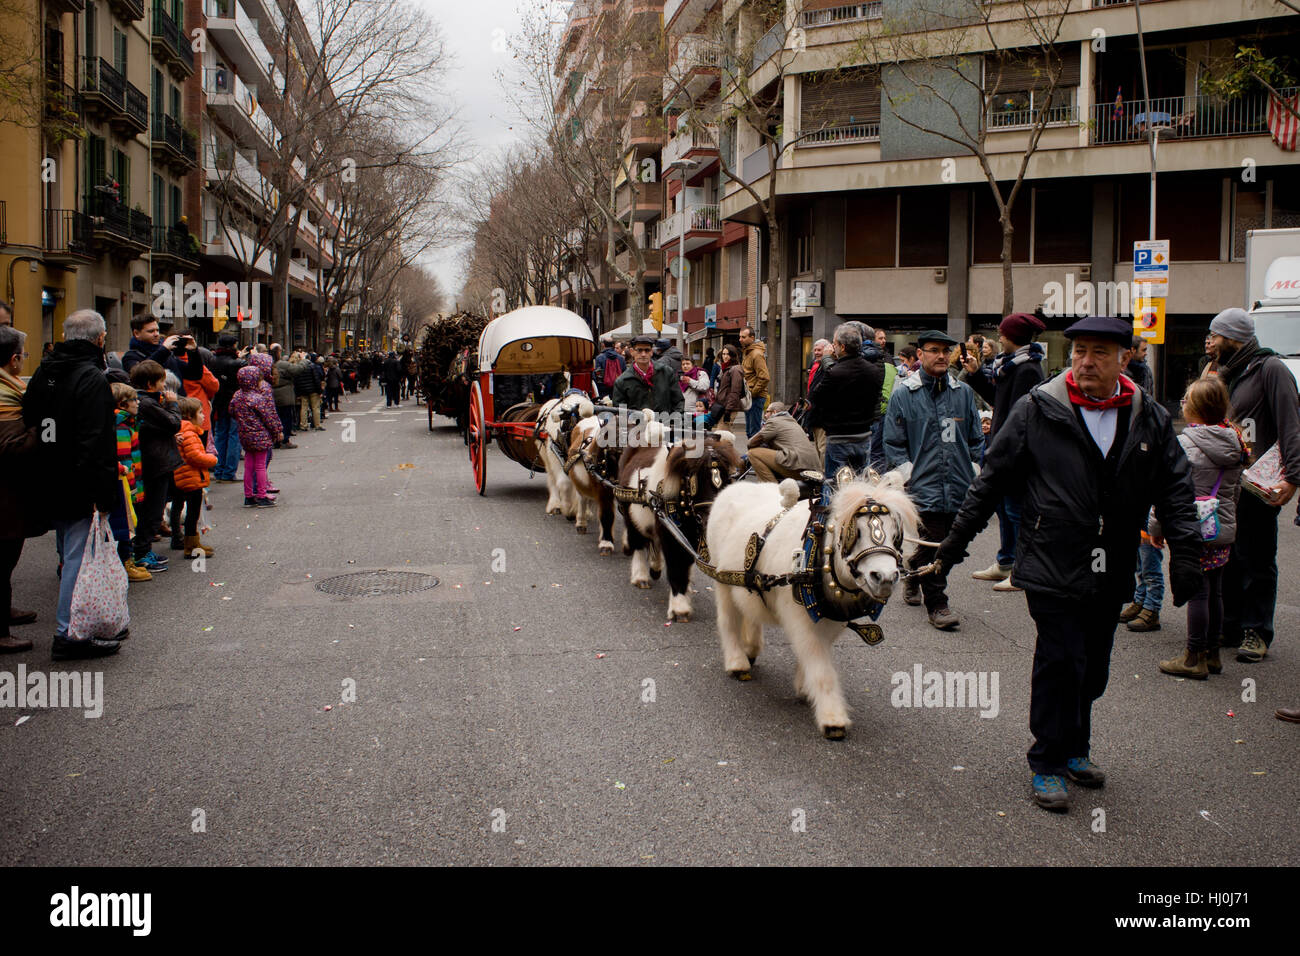 Barcelona, Spain. 21st Jan, 2017. January 21, 2017 - Barcelona, Catalonia, Spain - A carriage pulled by ponies goes Stock Photo